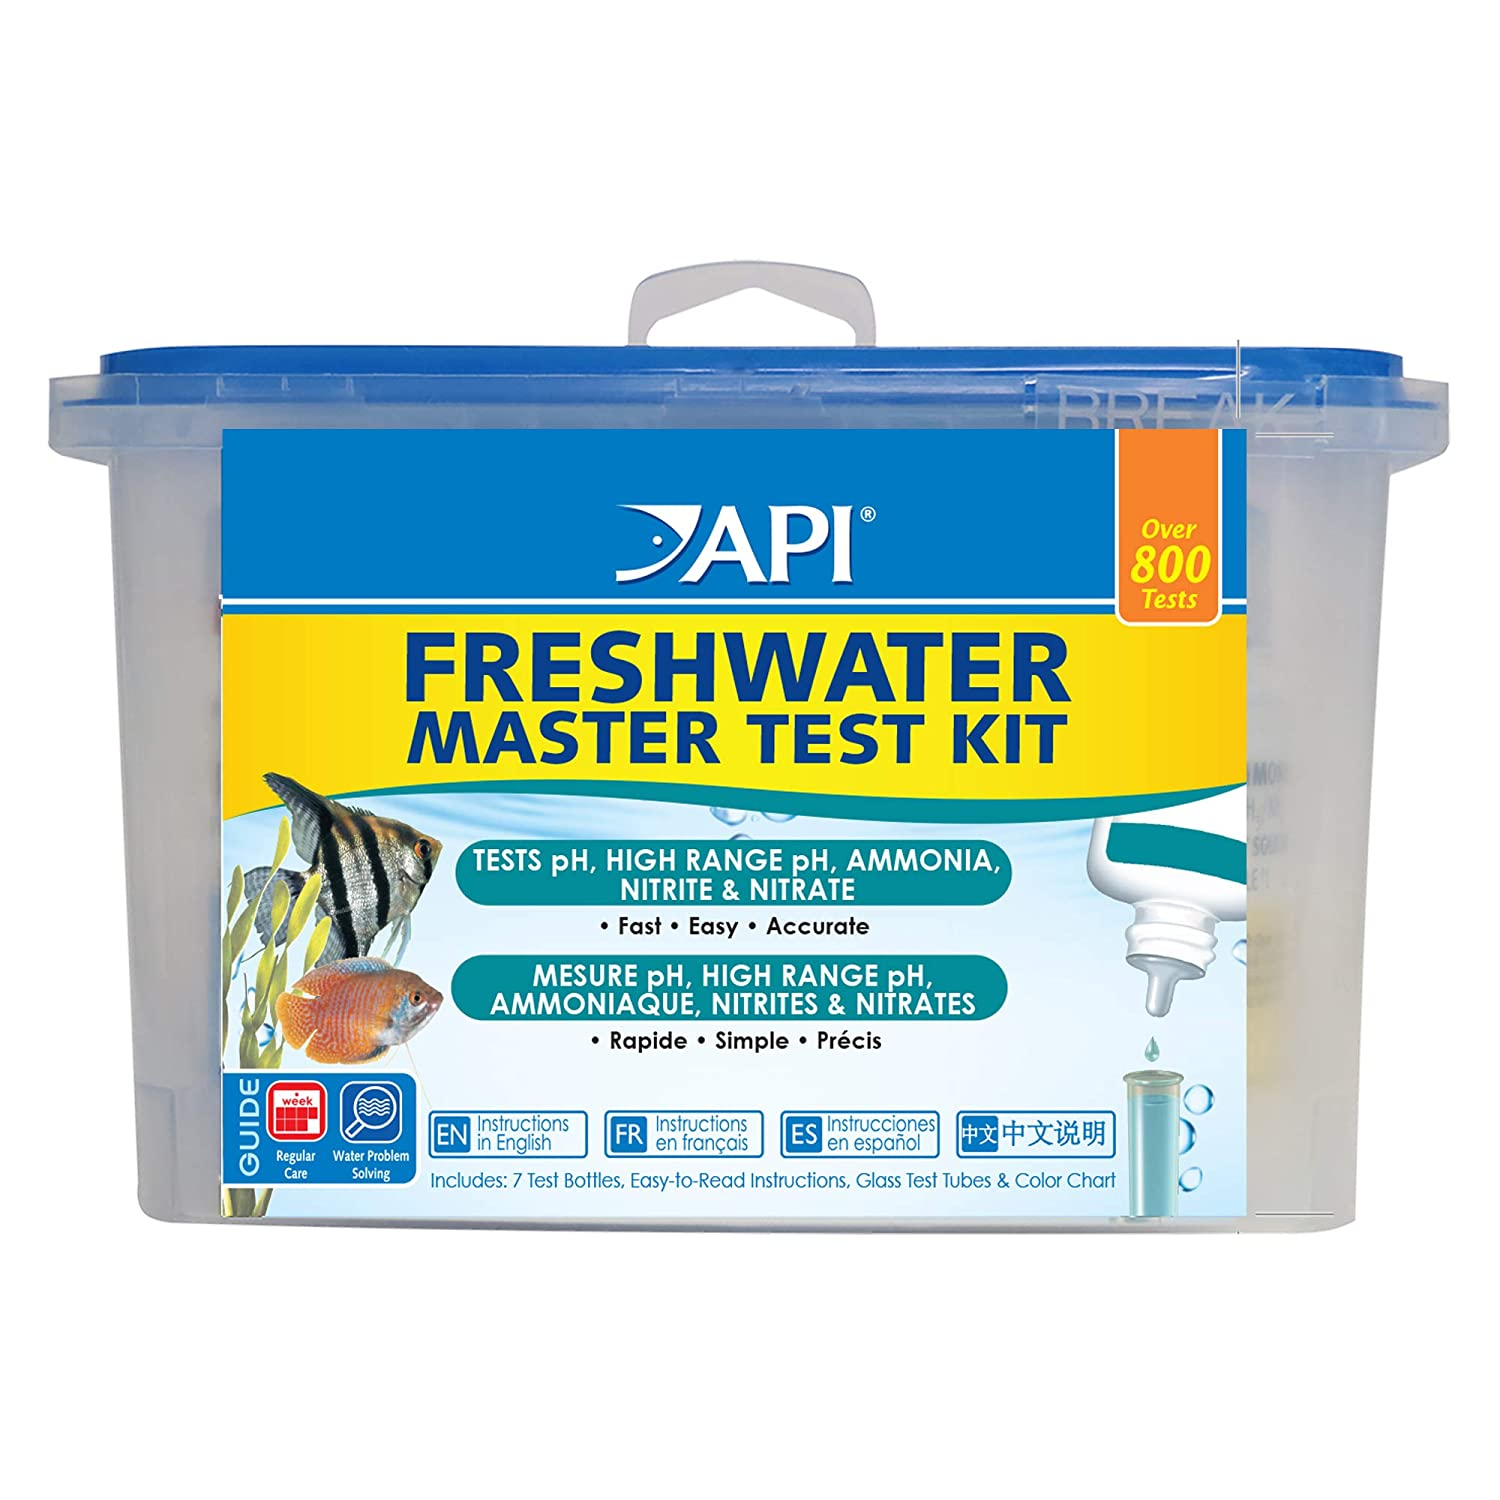 API Master Test Kits for Freshwater, Saltwater, Reef Aquariums and Pond, Monitor Water Quality and Help Prevent Invisible Problems That can be Harmful to Fish, Use Weekly and When Problems Appear